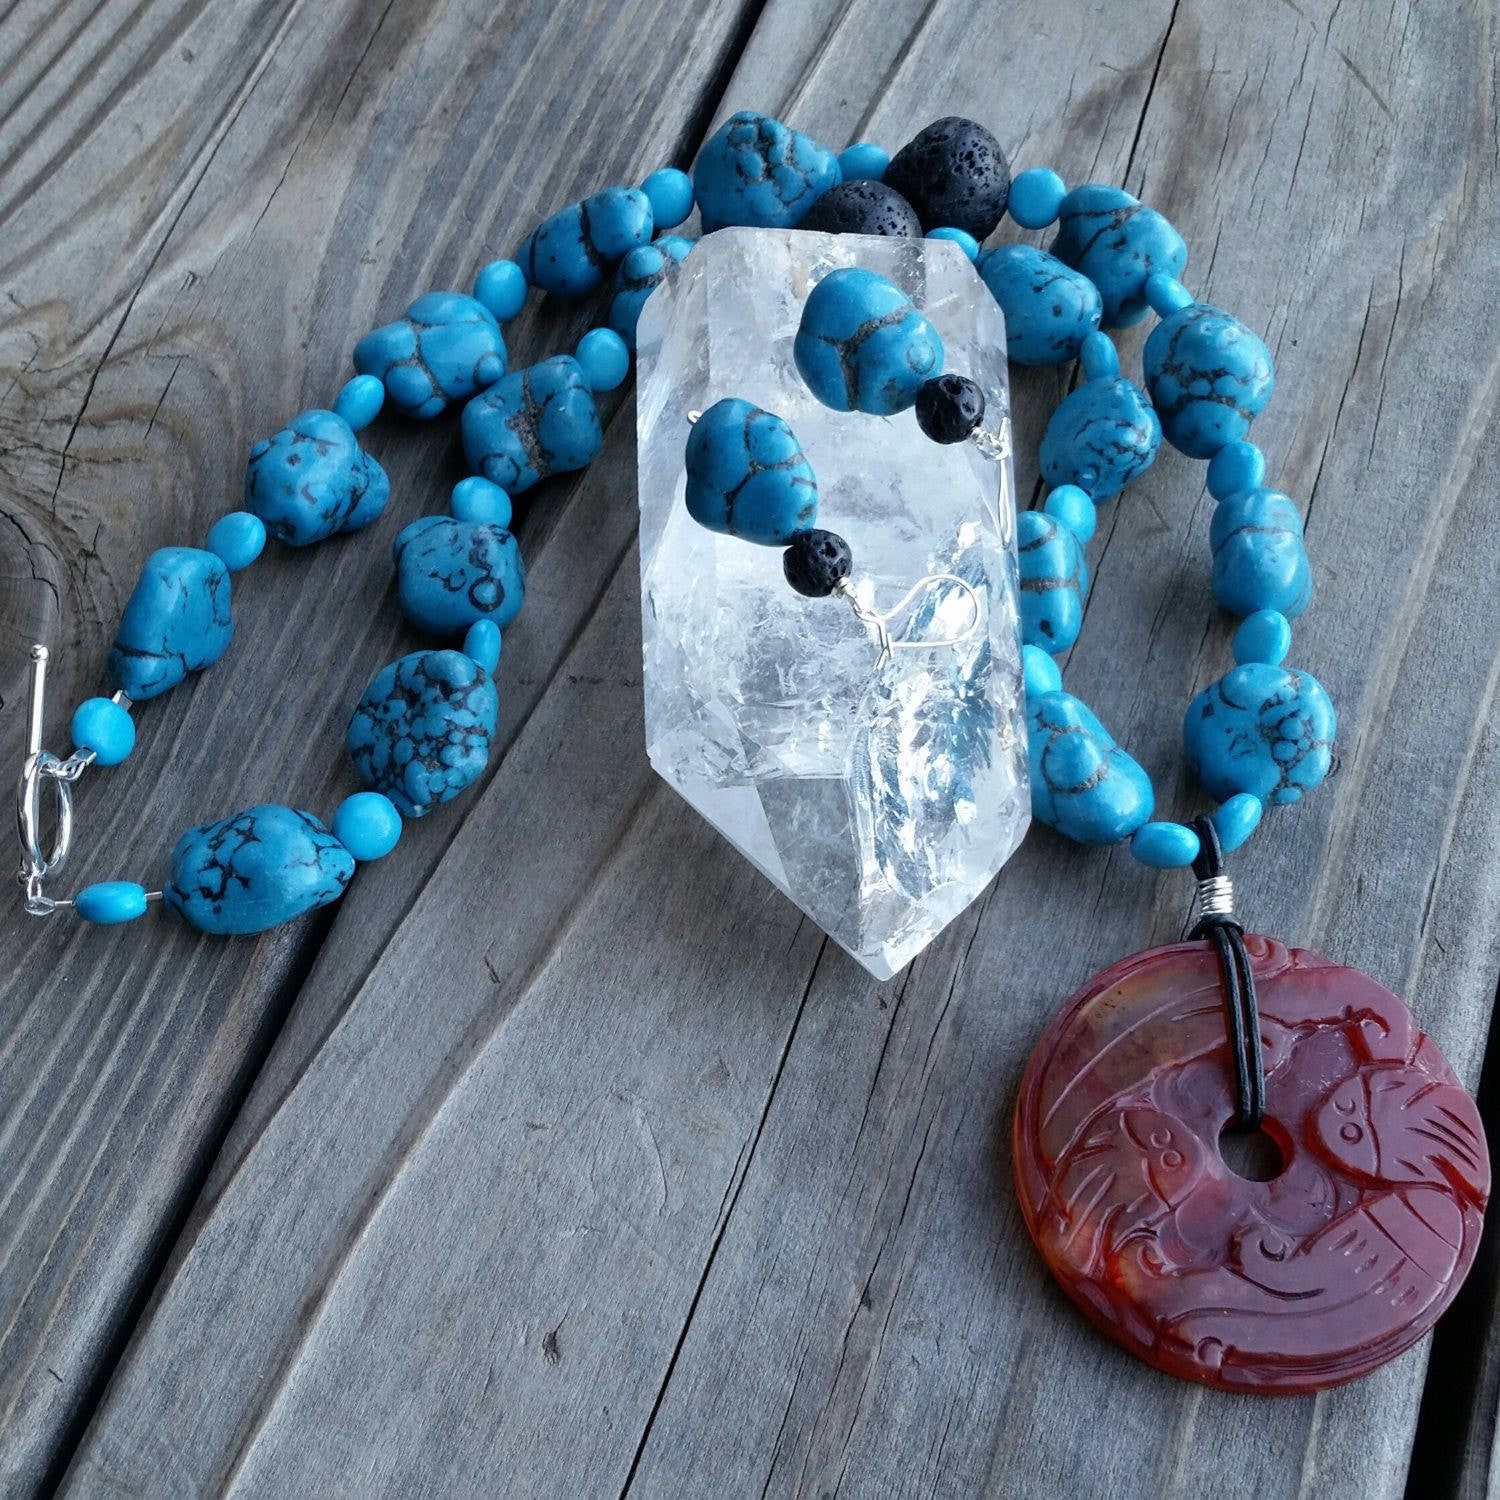 Essential oil diffuser necklace/earring set - blue Magnesite, agate